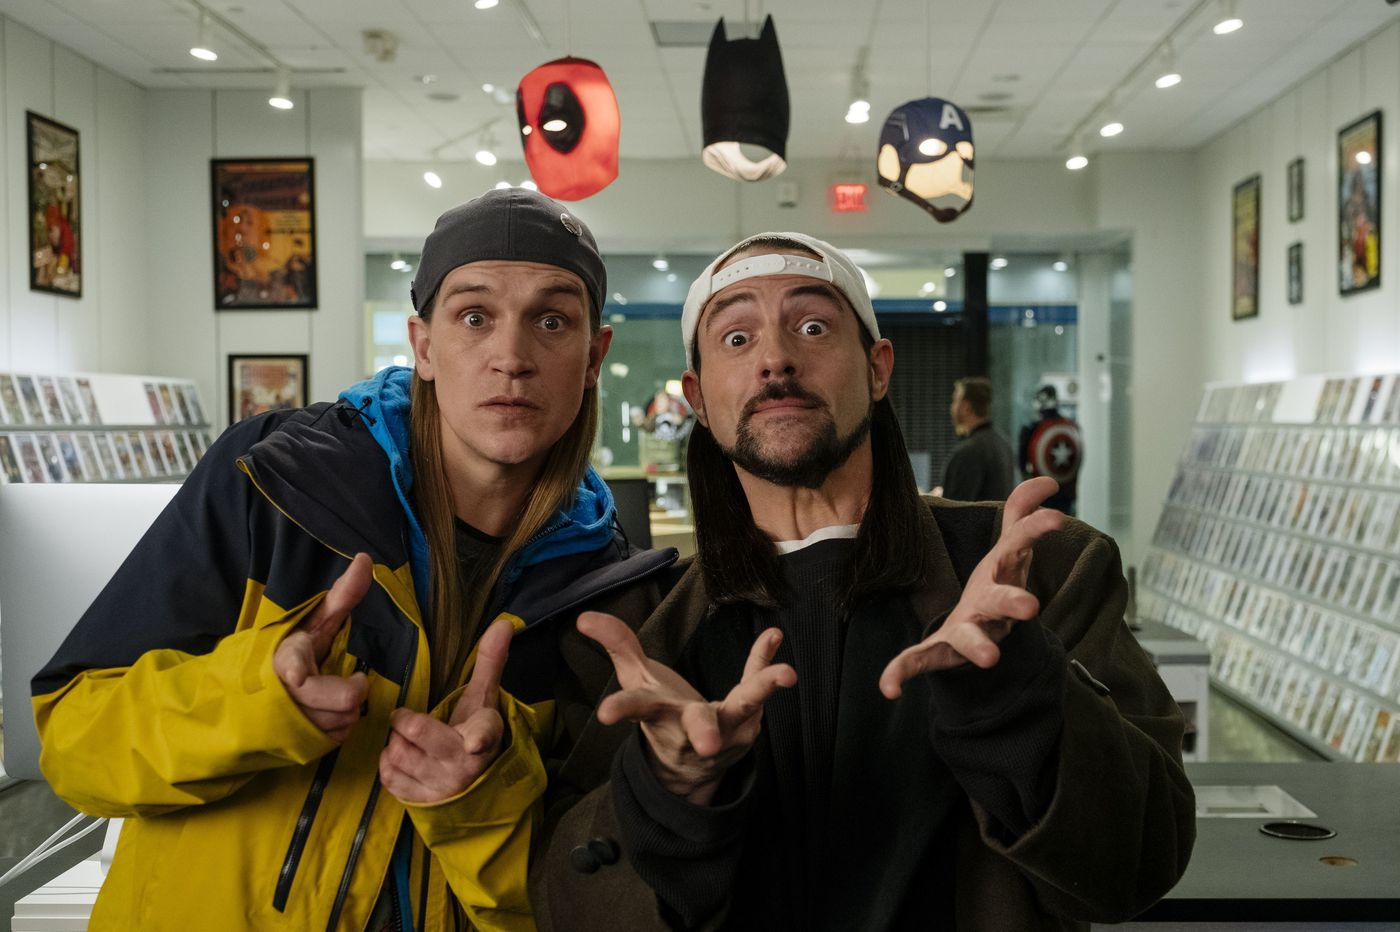 Kevin Smith planned to shoot a movie in the Philly area. The film fell apart, but inspired his next one.